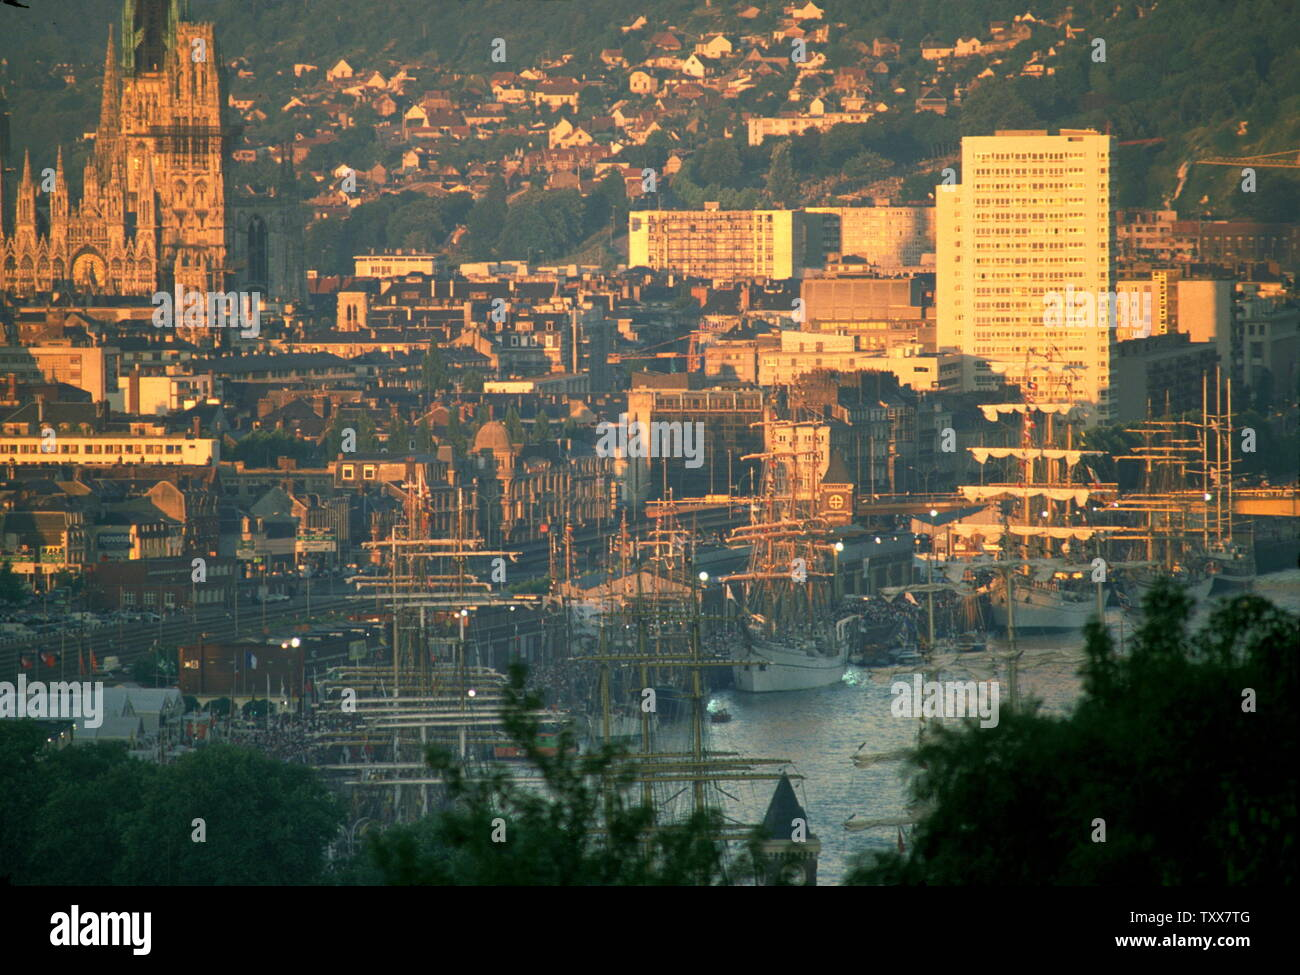 AJAXNETPHOTO. 1989. ROUEN, FRANCE. - VOILE DE LA LIBERTE - TALL SHIPS MOORED ON THE QUAYS IN THE SHADOW OF A DYING SUN. PHOTO:JONATHAN EASTLAND/AJAX REF:22506 1 43 Stock Photo